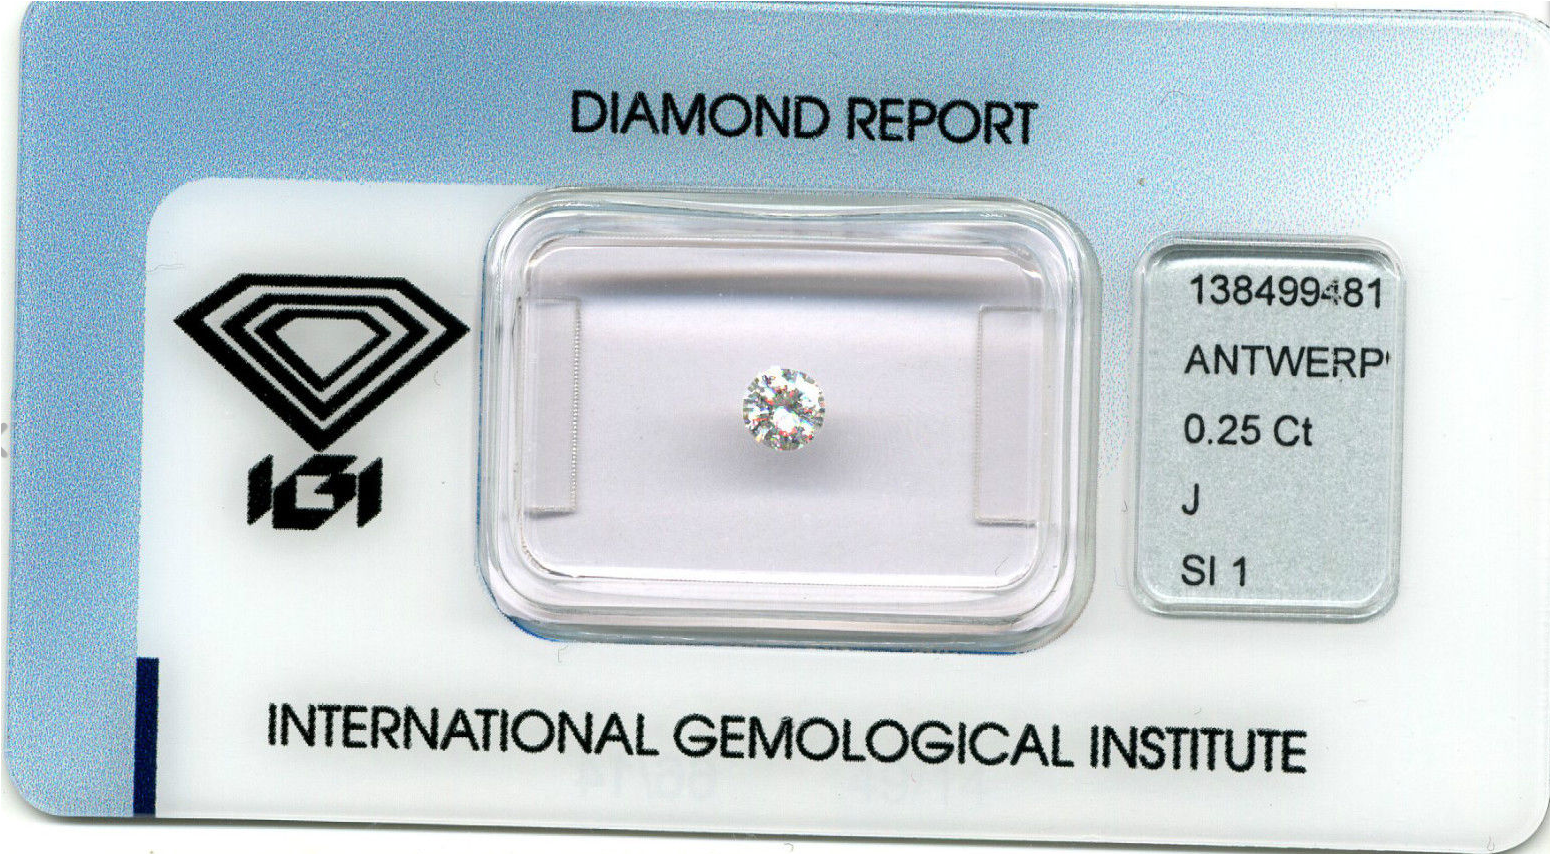 guide ring shades igi such colors fancy report as grading labeled these the engage diamond most and s buyer an htm intense are engagement color on of graded